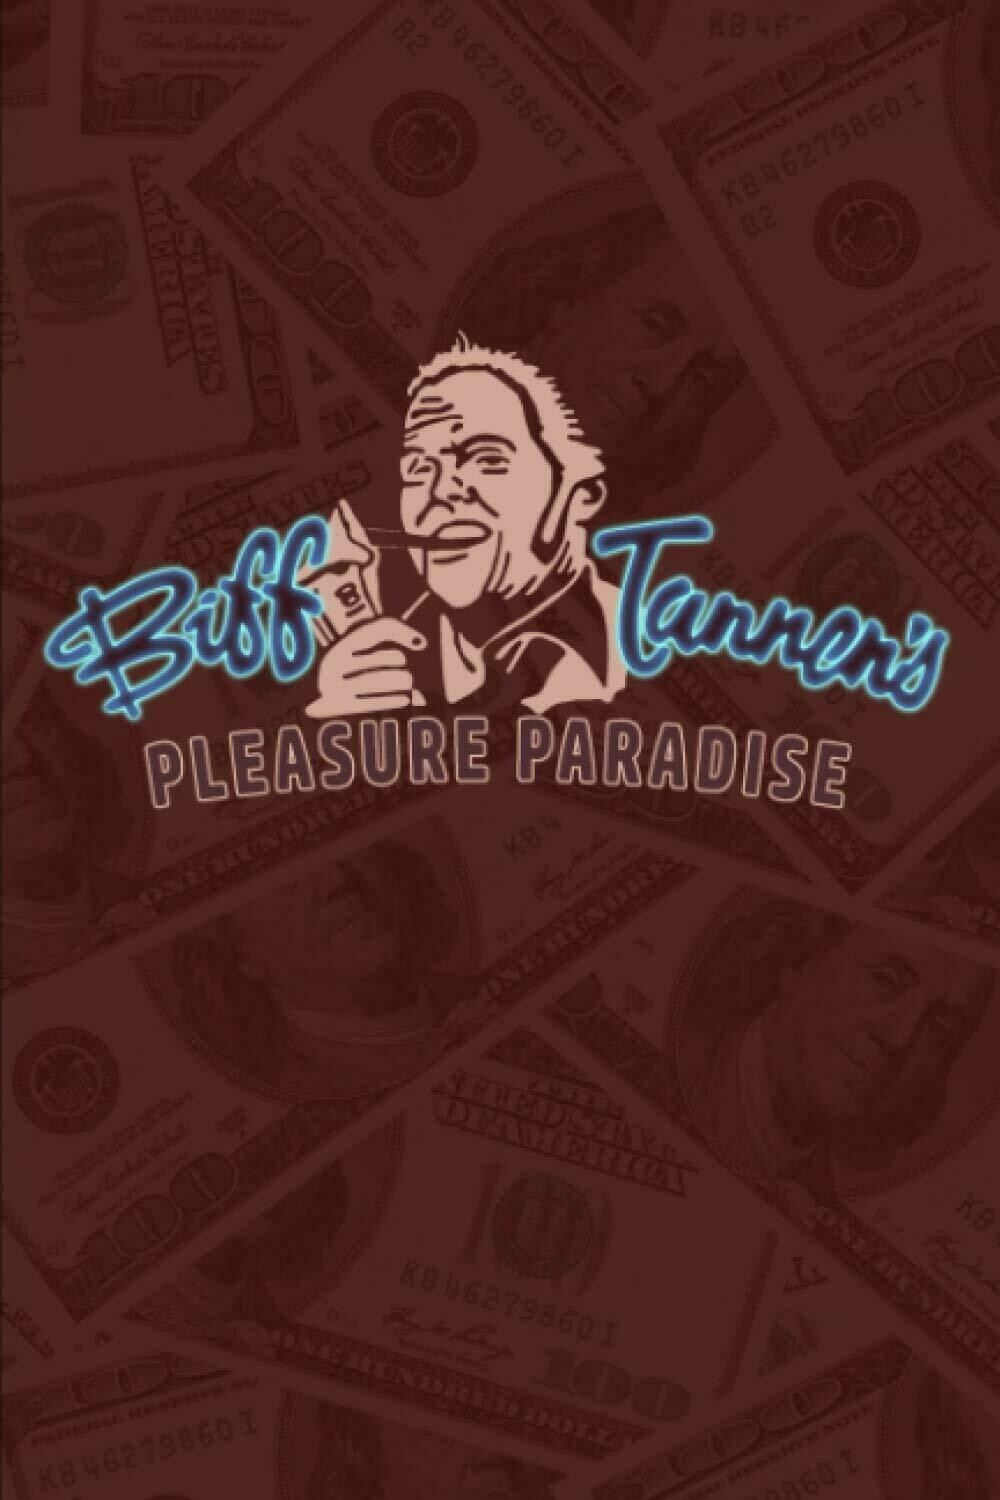 BIFF TANNEN'S PLEASURE PARADISE (Back to the Future) Luxury Lined Notebook - Journal Diary Writing Paper Note Pad Book Movie Prop Replica BTTF Part 2